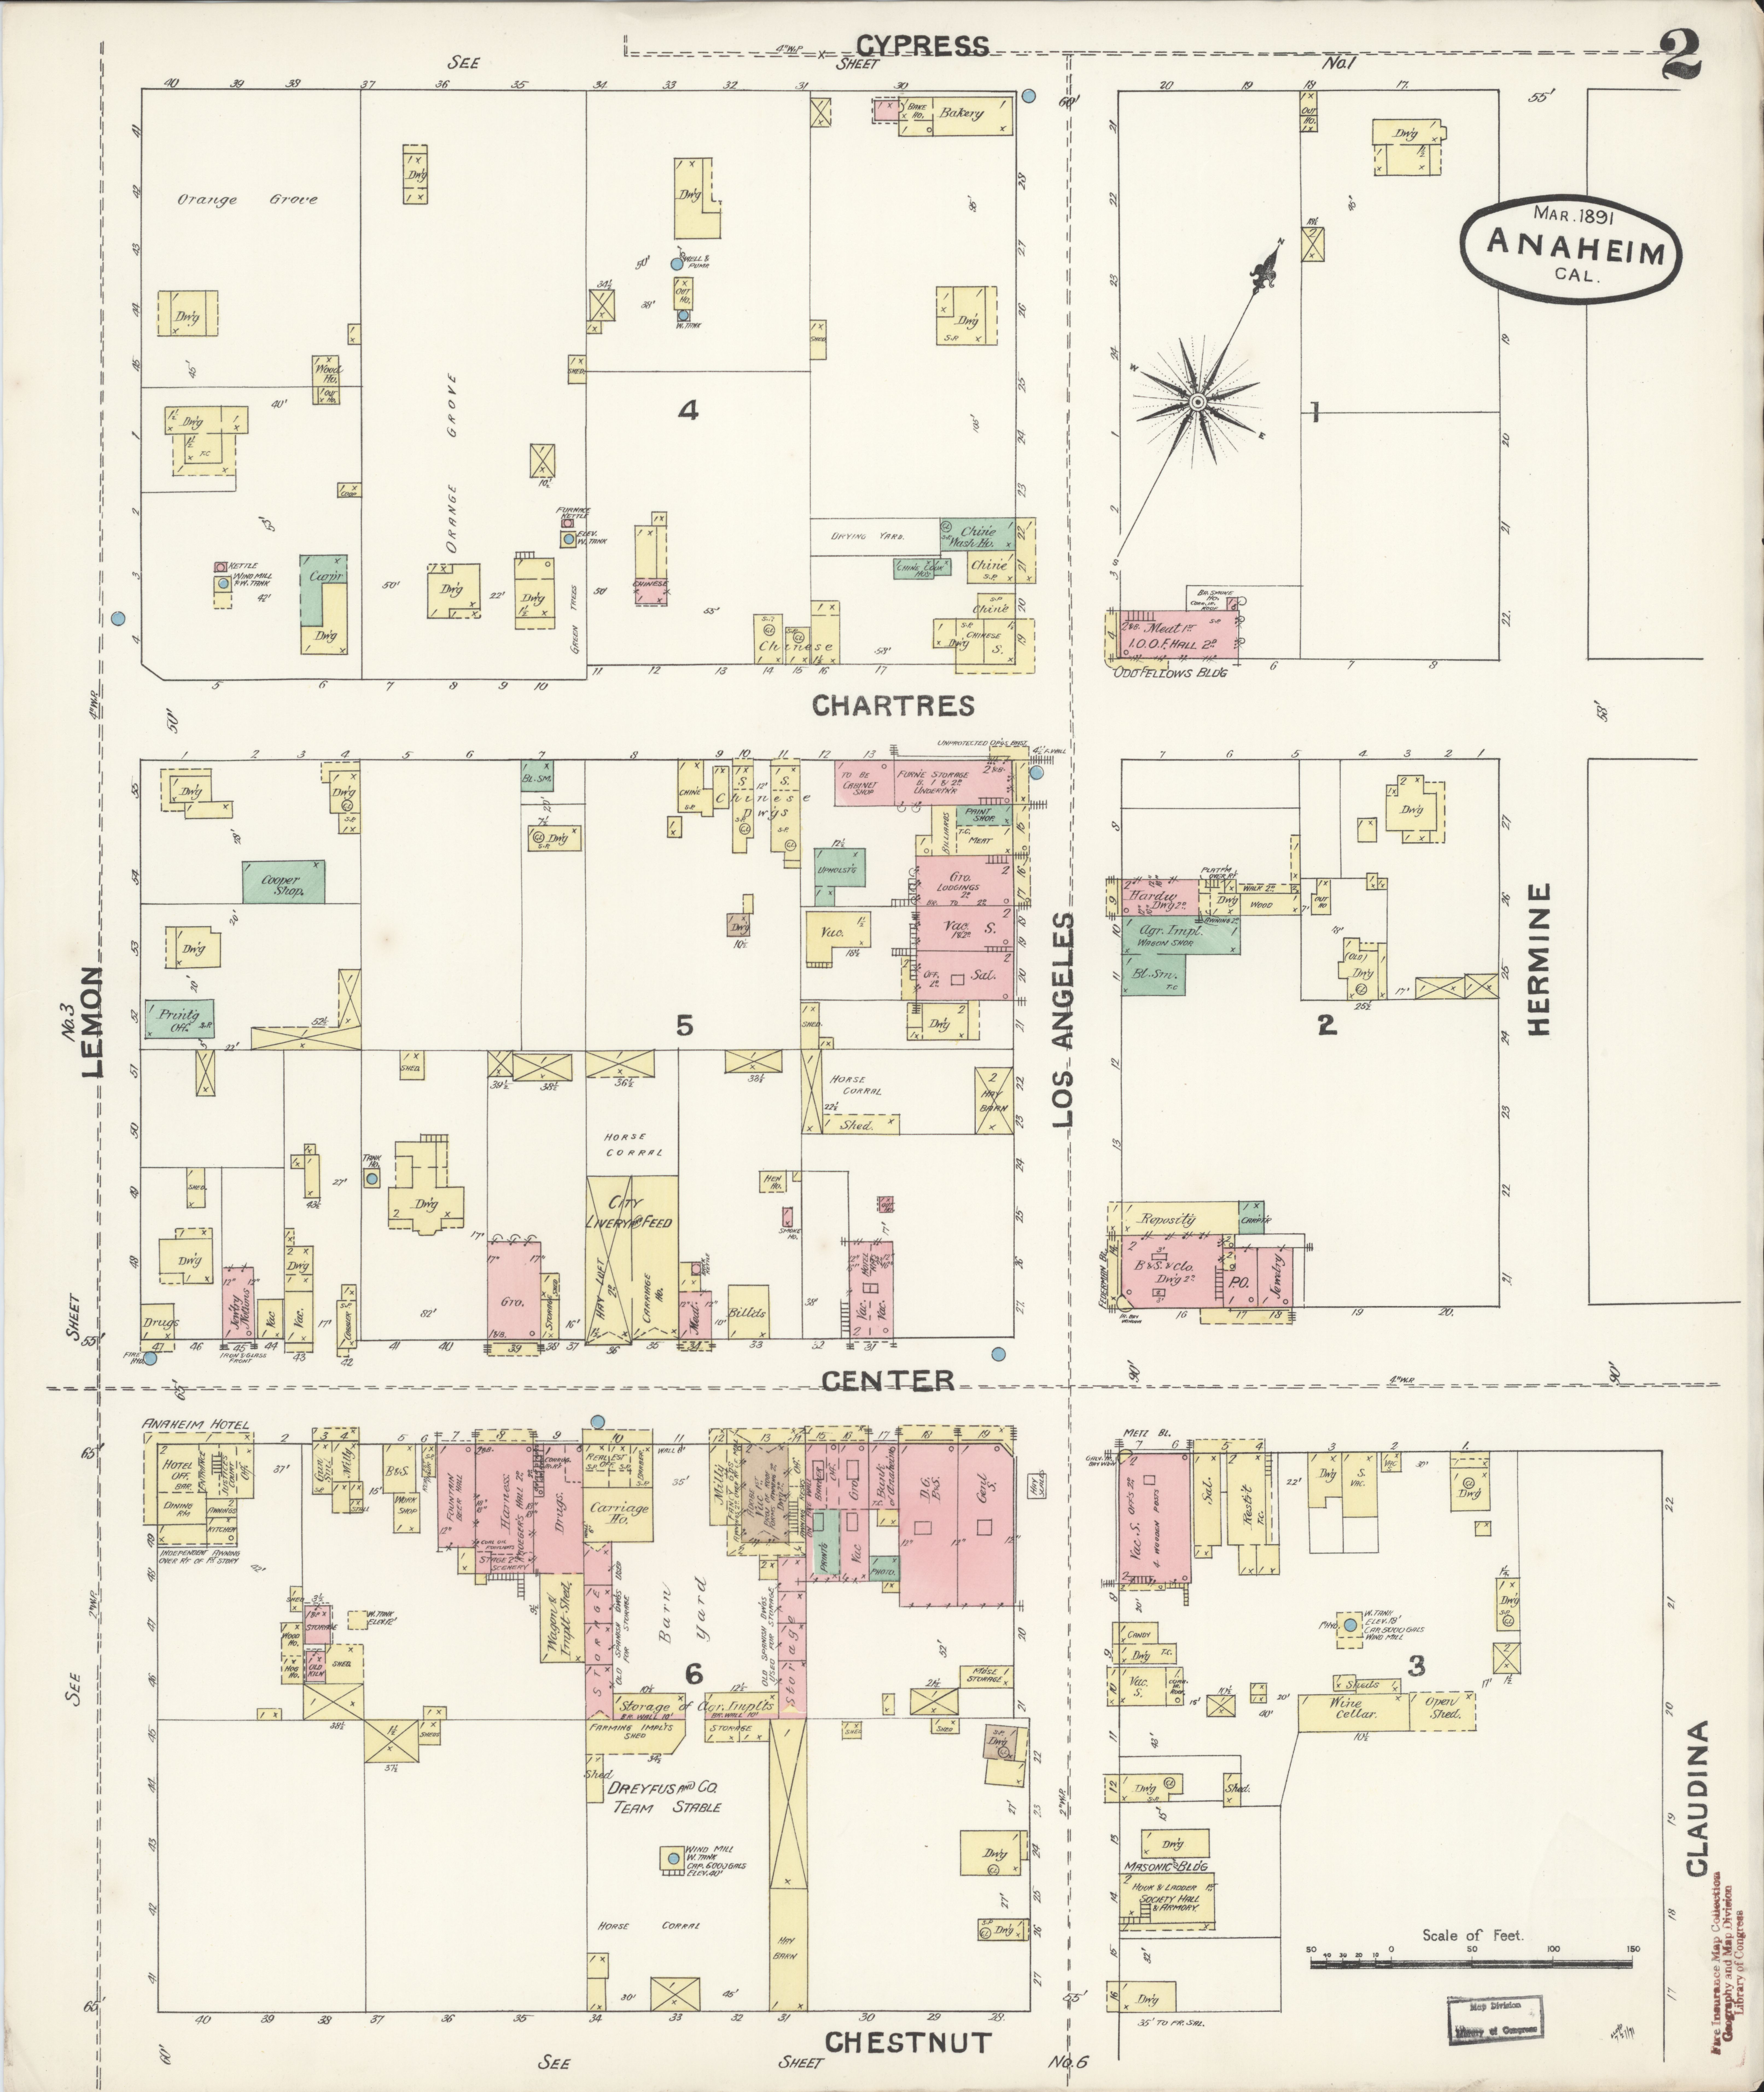 File:Sanborn Fire Insurance Map from Anaheim, Orange County ... on map of southern california, map of pasadena california, map of san gabriel valley california, map of buffalo california, map of cazadero california, map of sugarloaf california, map of torrance california, map of lathrop california, map of crestline california, map of frazier park california, map of city of riverside california, map of leucadia california, map of california adventures california, map of holllywood california, map of china lake california, map of desert hot springs california, map of belvedere california, map of california cities, map of long beach california, map of lomita california,